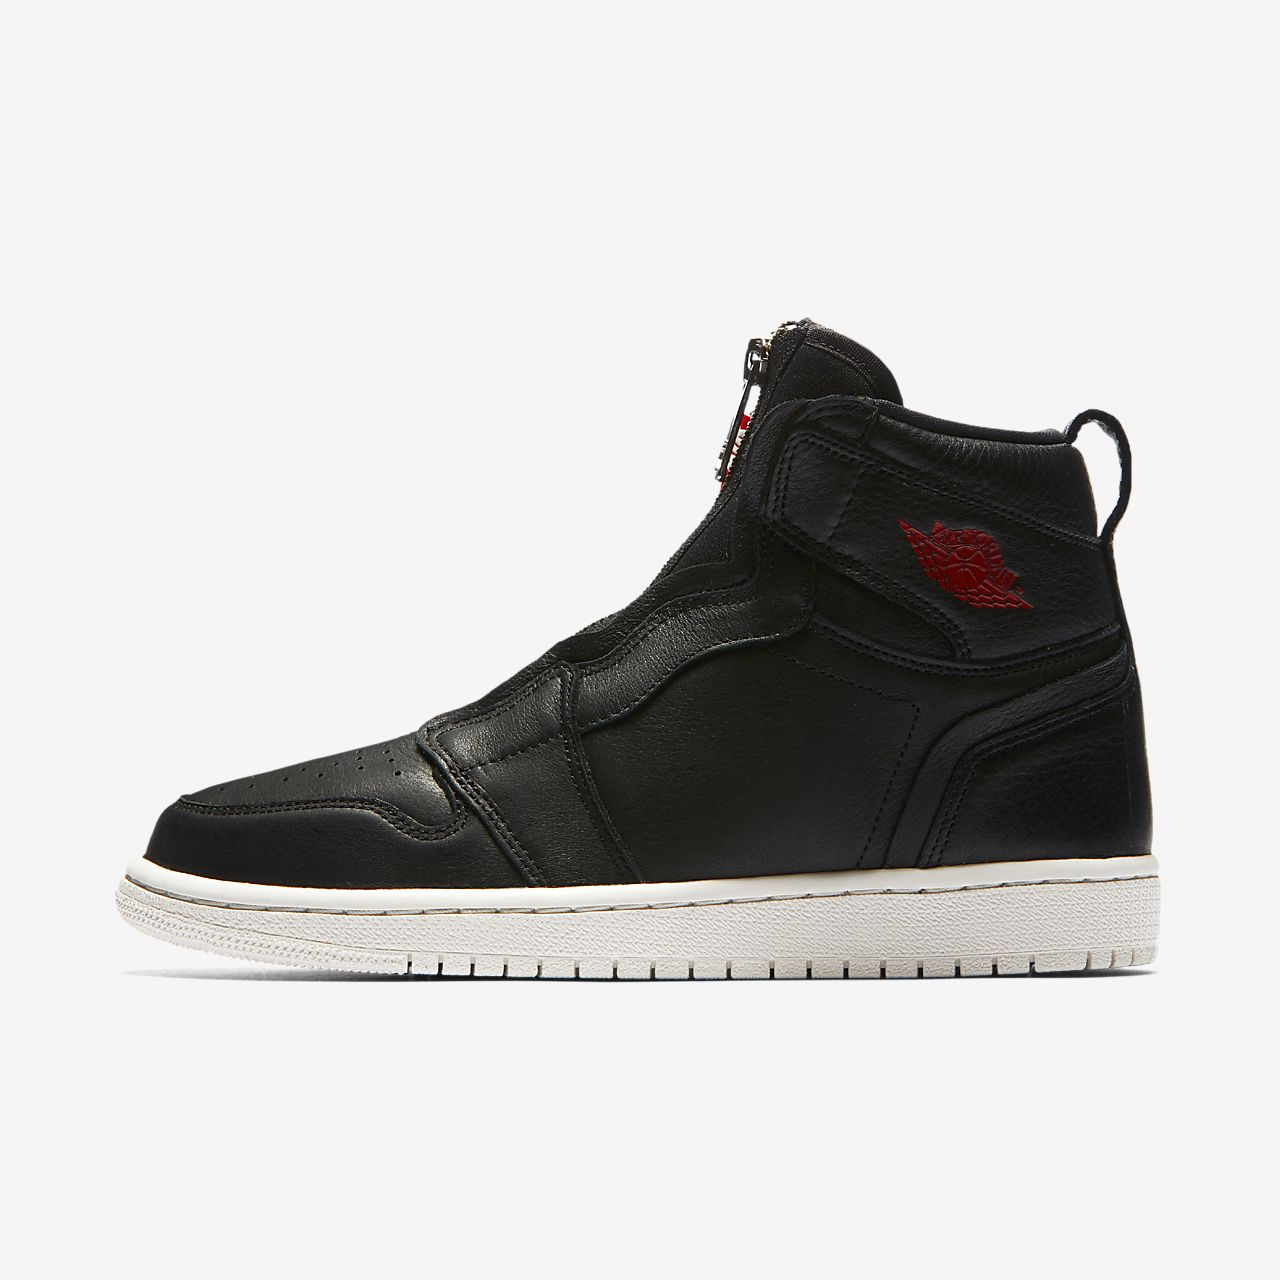 air jordan 1 high zip nz